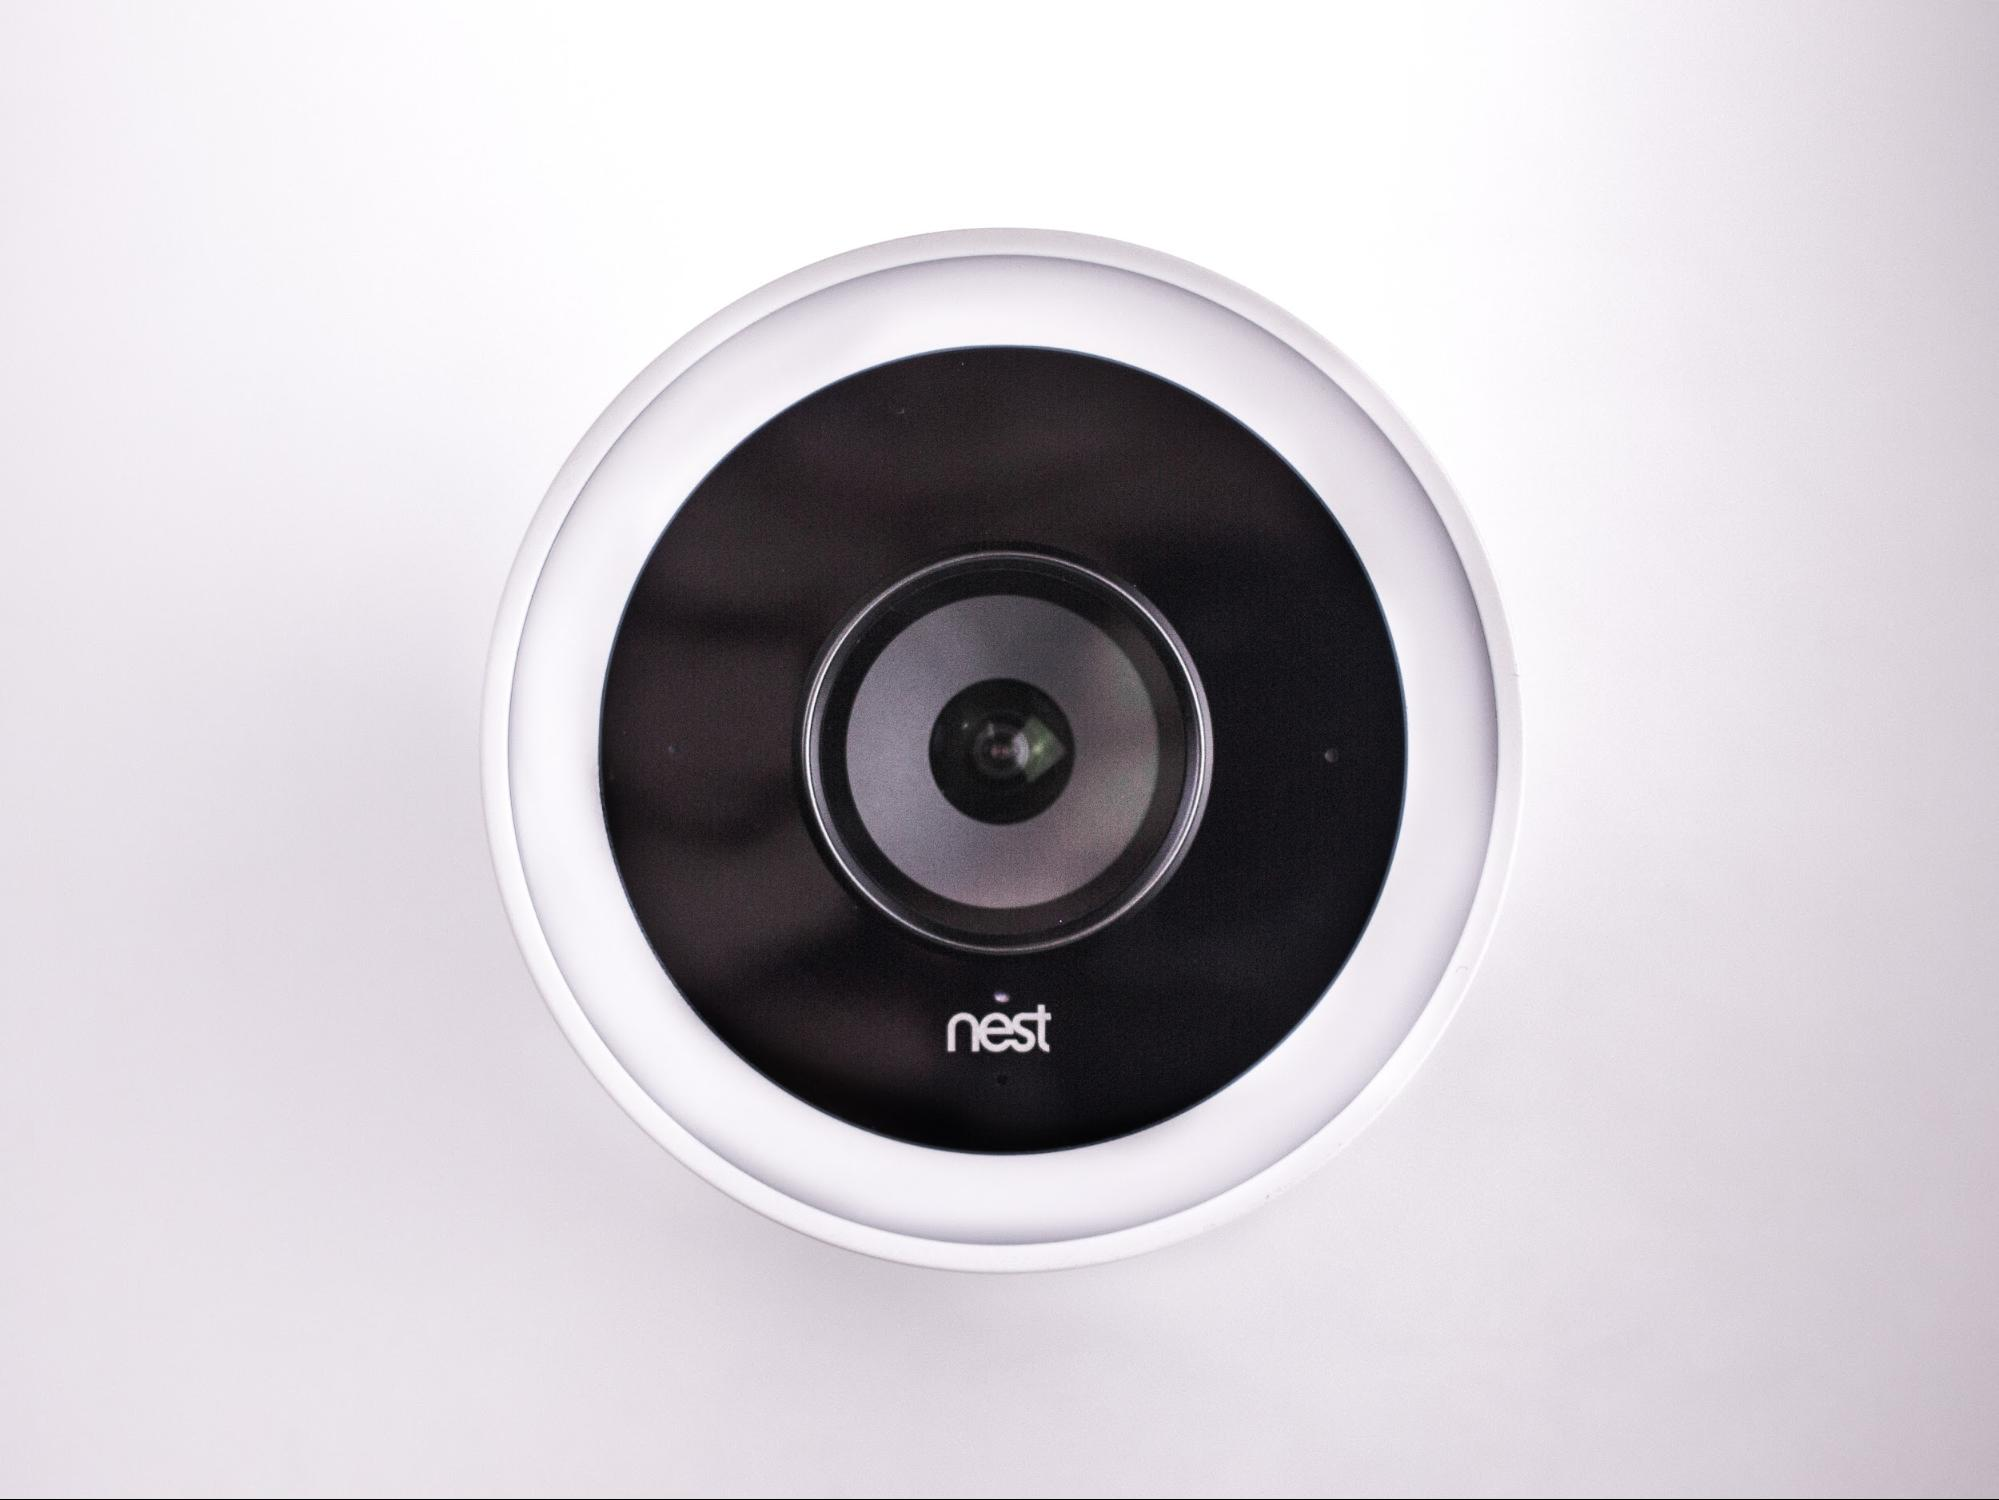 The lens of the Google Nest Cam IQ